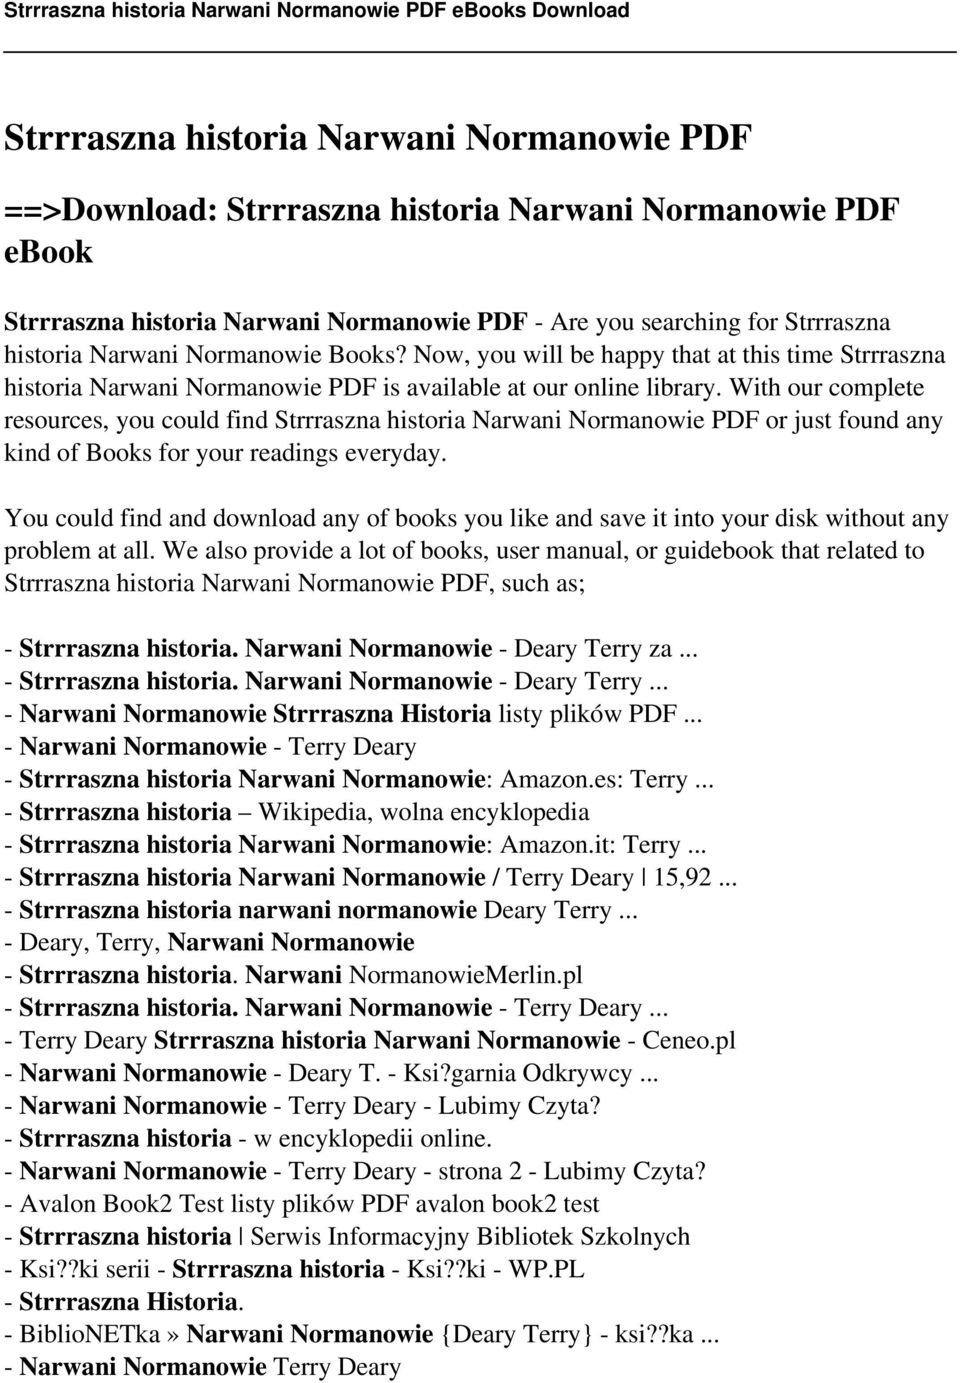 With our complete resources, you could find Strrraszna historia Narwani Normanowie PDF or just found any kind of Books for your readings everyday.